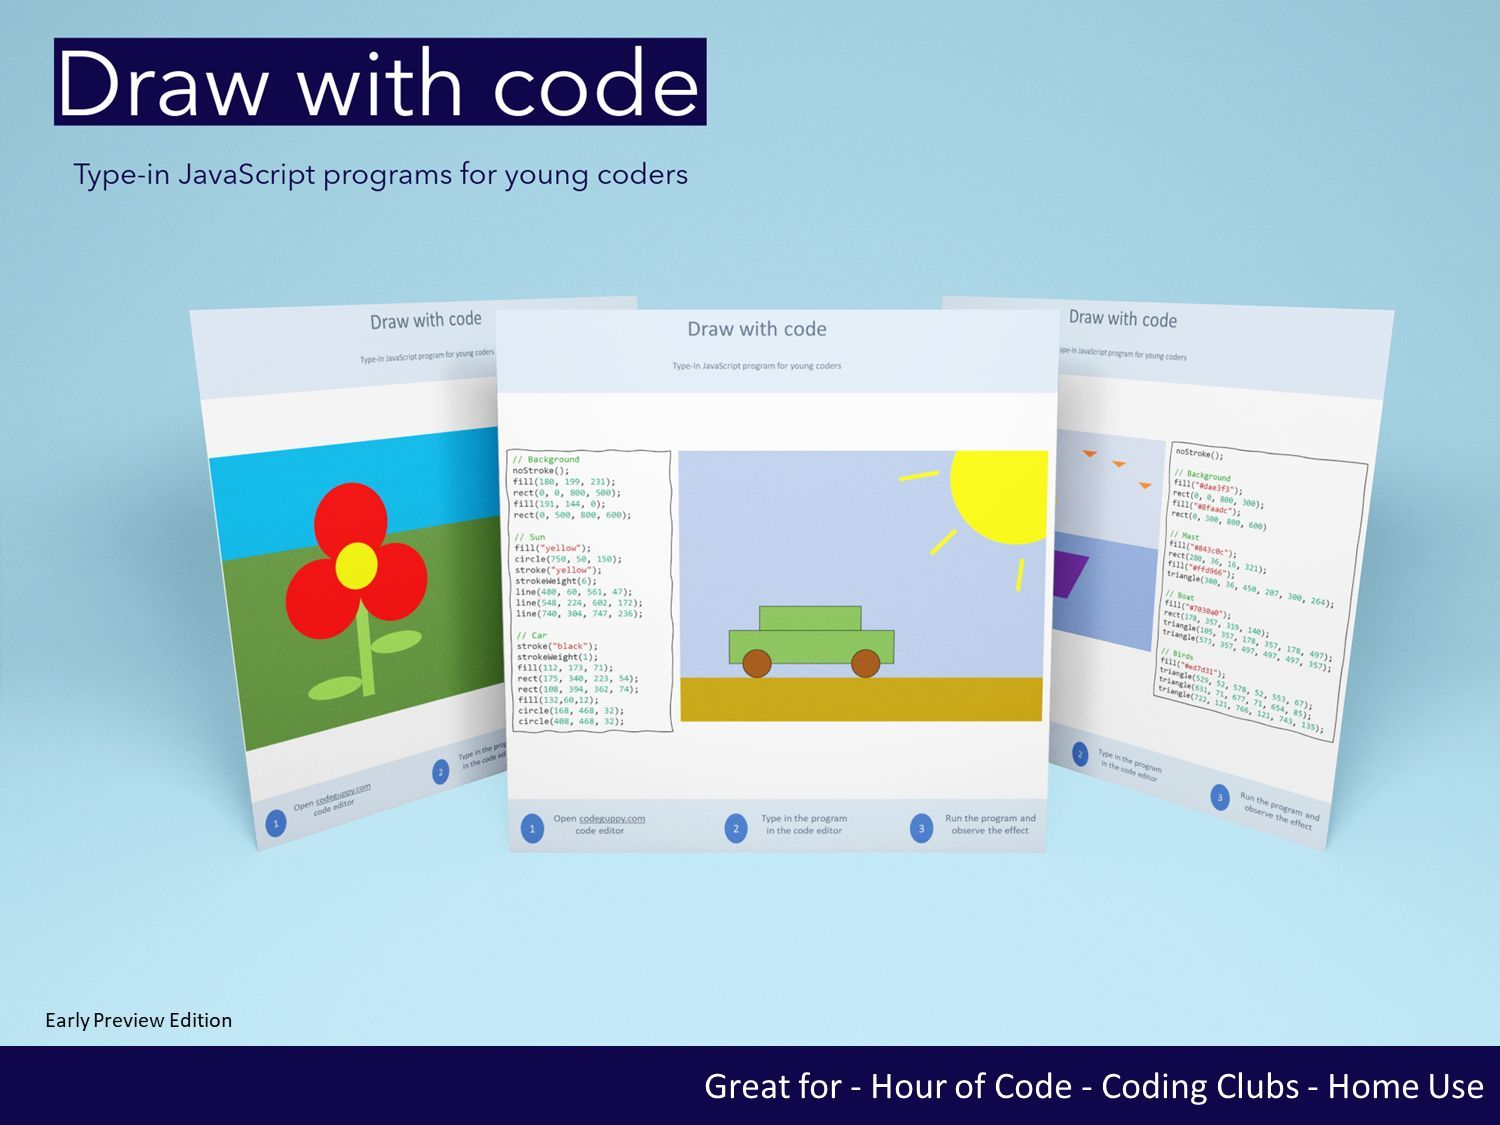 /use-type-in-programs-to-teach-kids-to-code-o4y3yu0 feature image